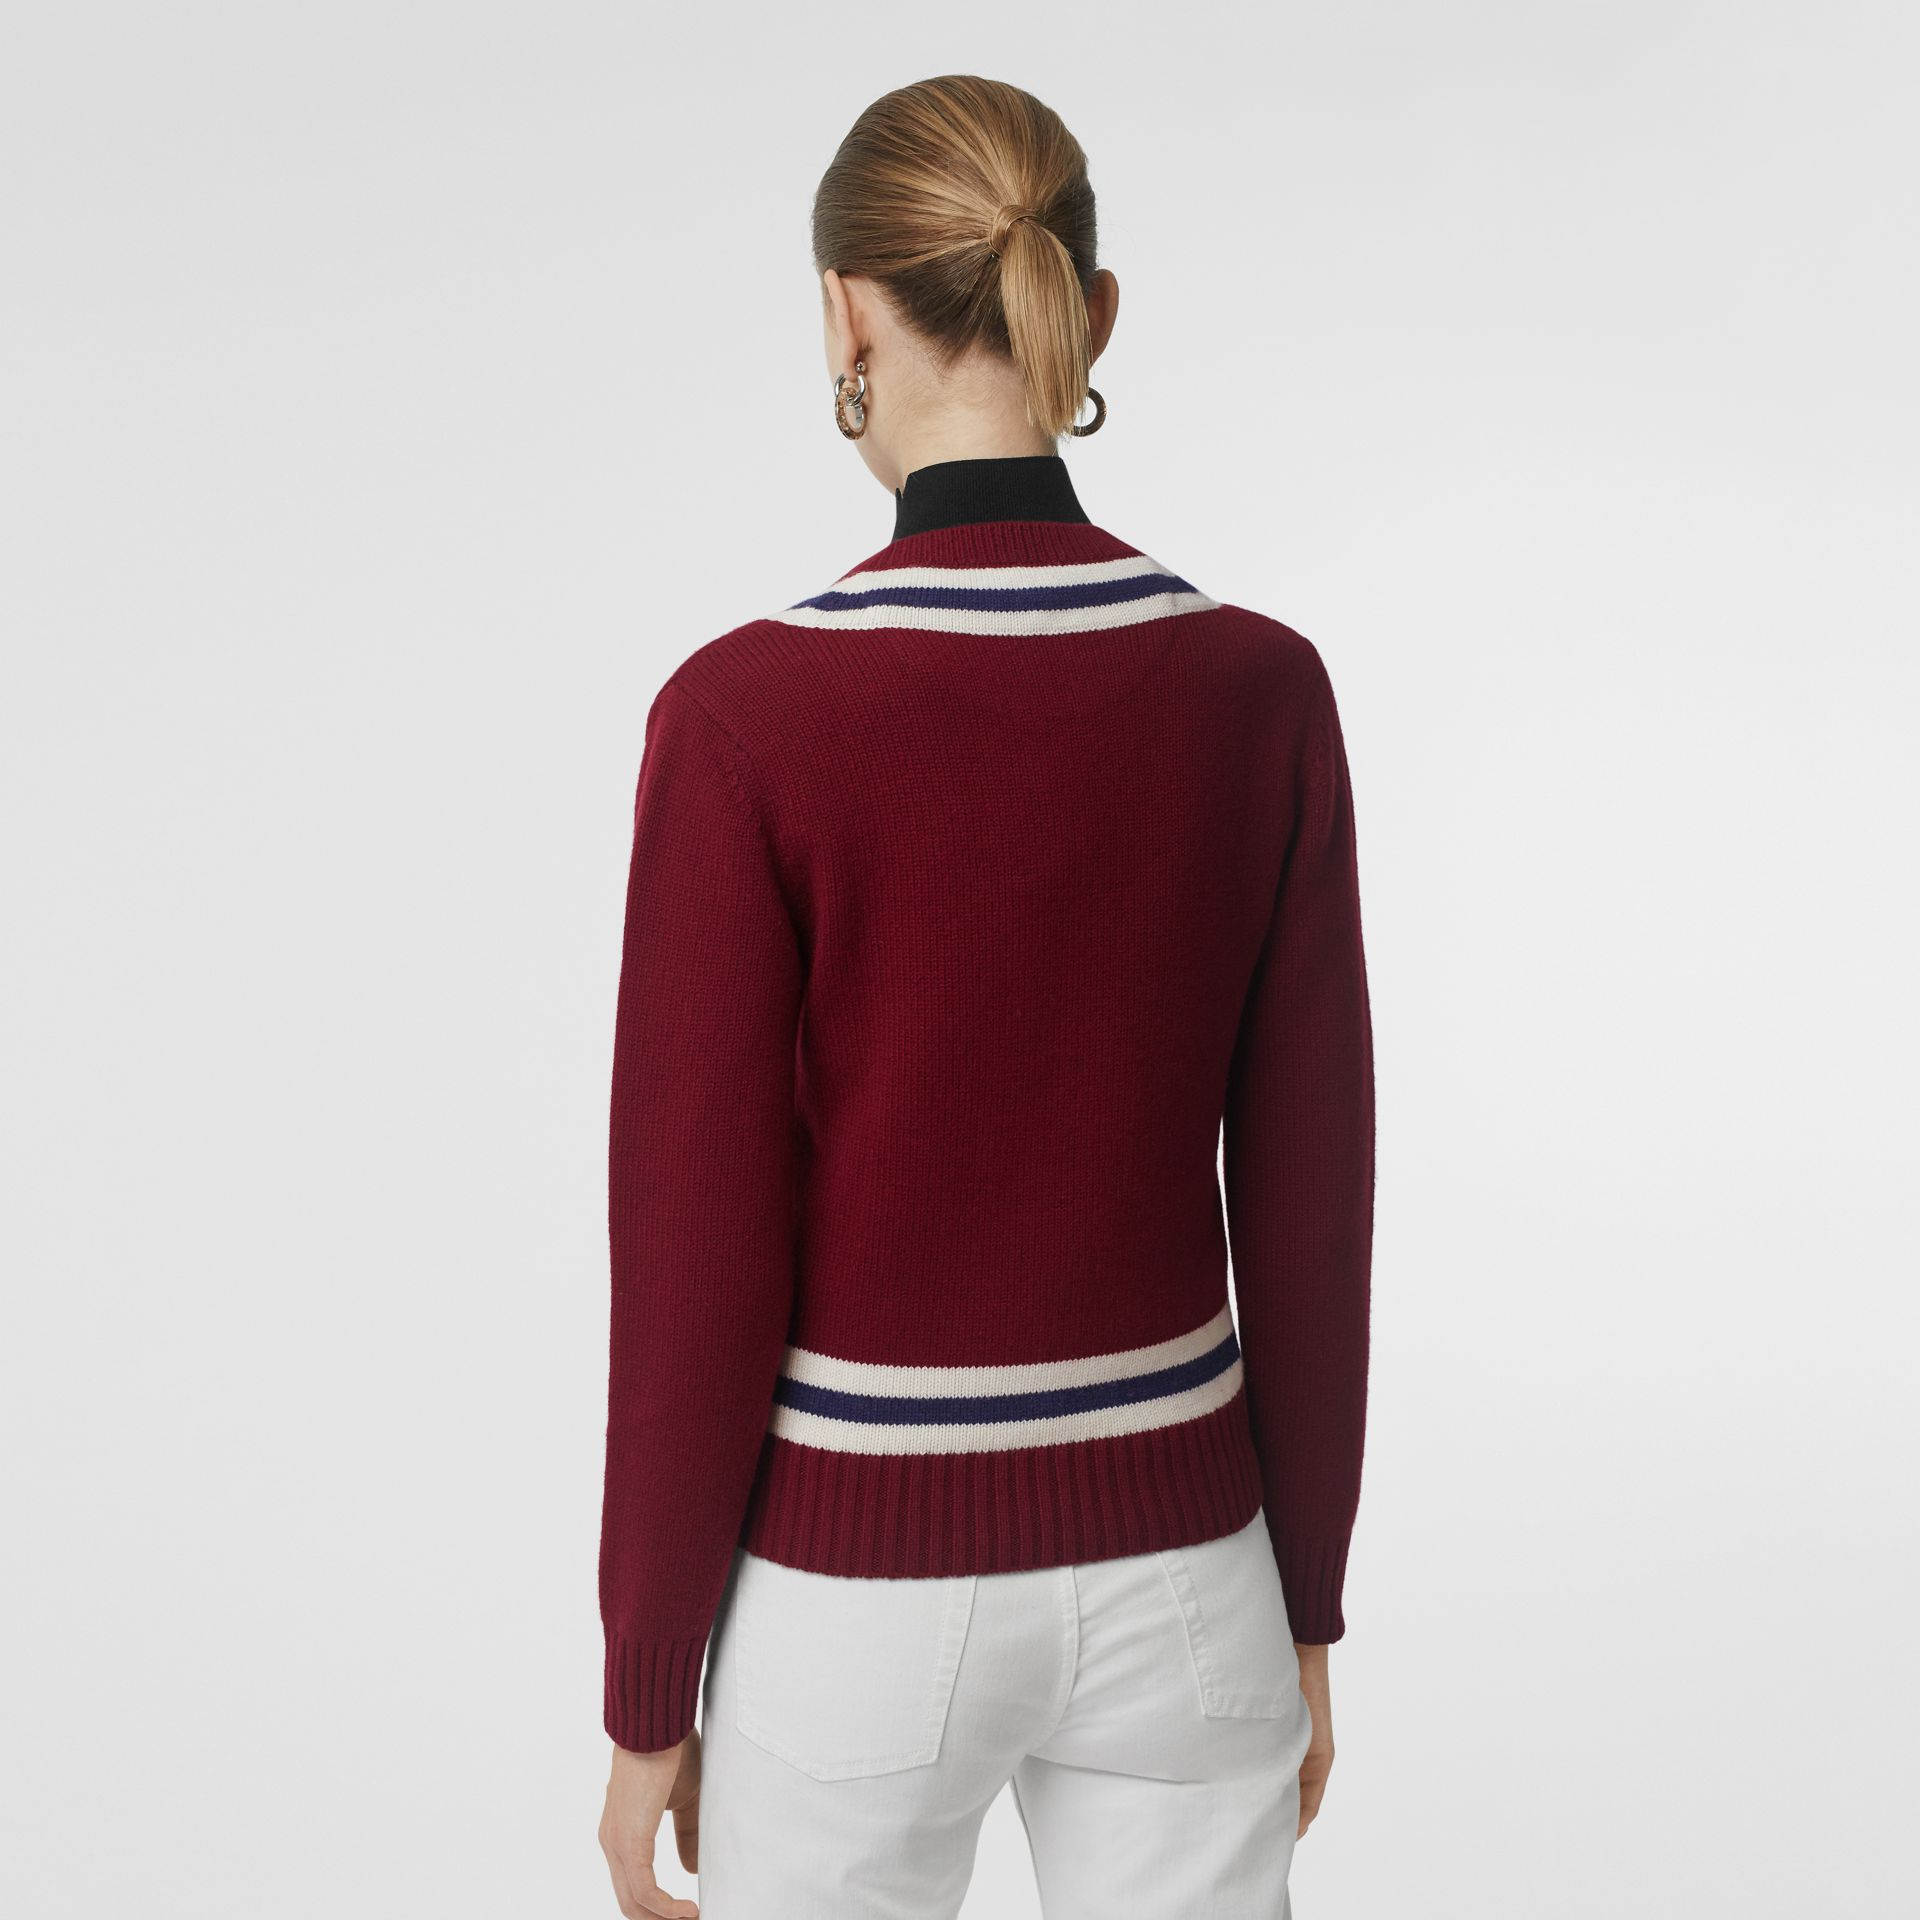 Embroidered Crest Wool Cashmere Sweater in Burgundy - Women | Burberry Australia - gallery image 2